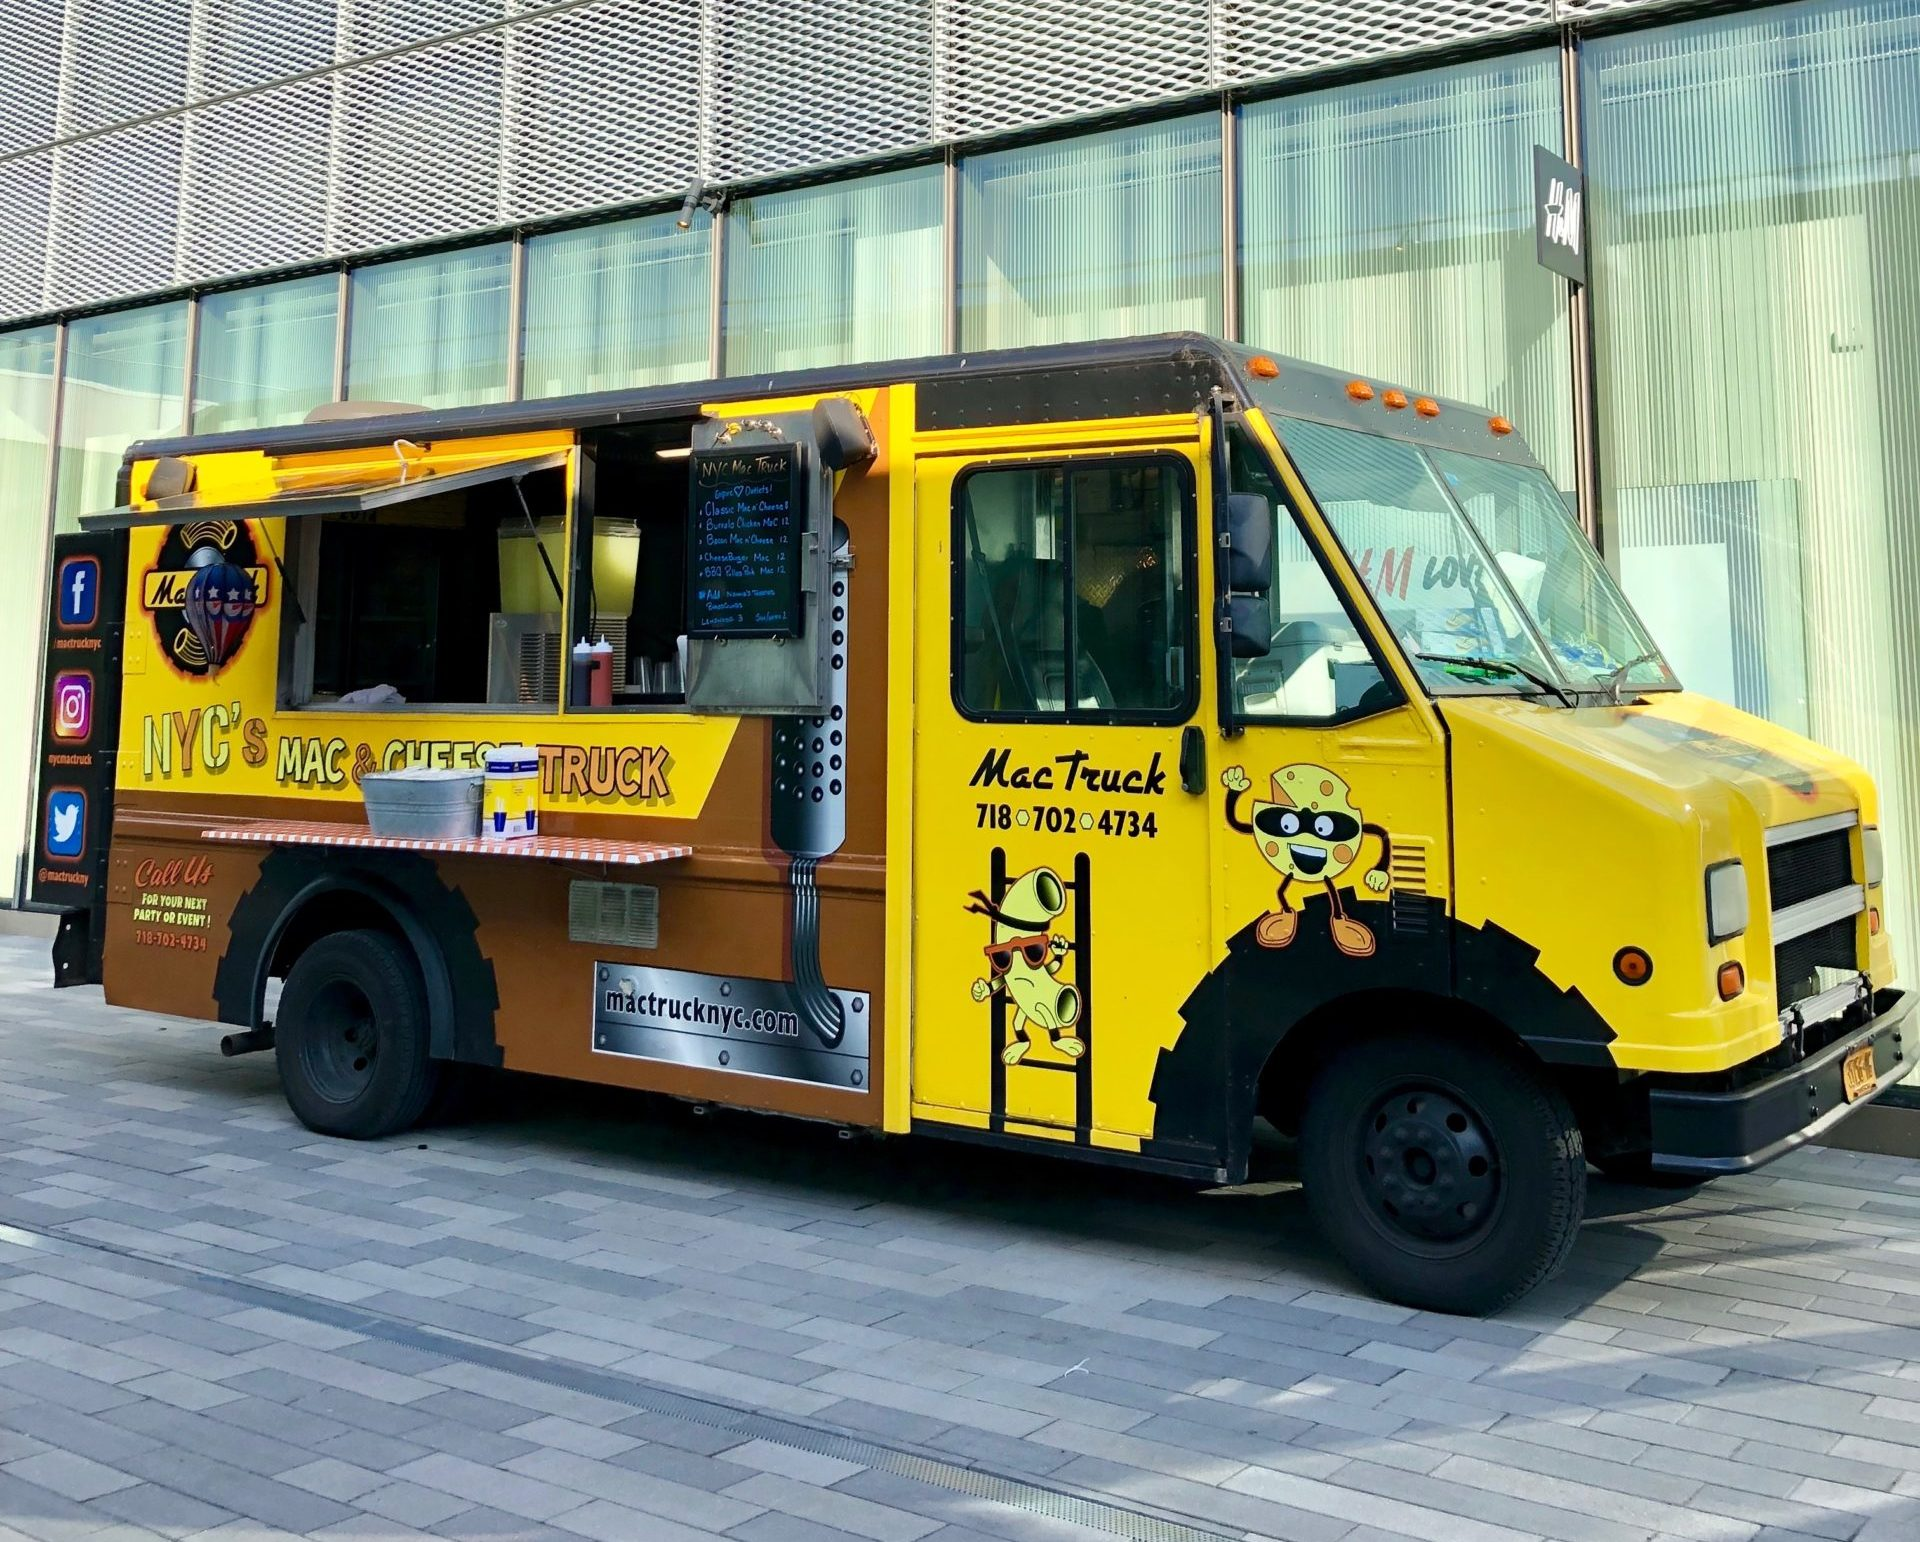 Mac n' cheese food truck catering NYC